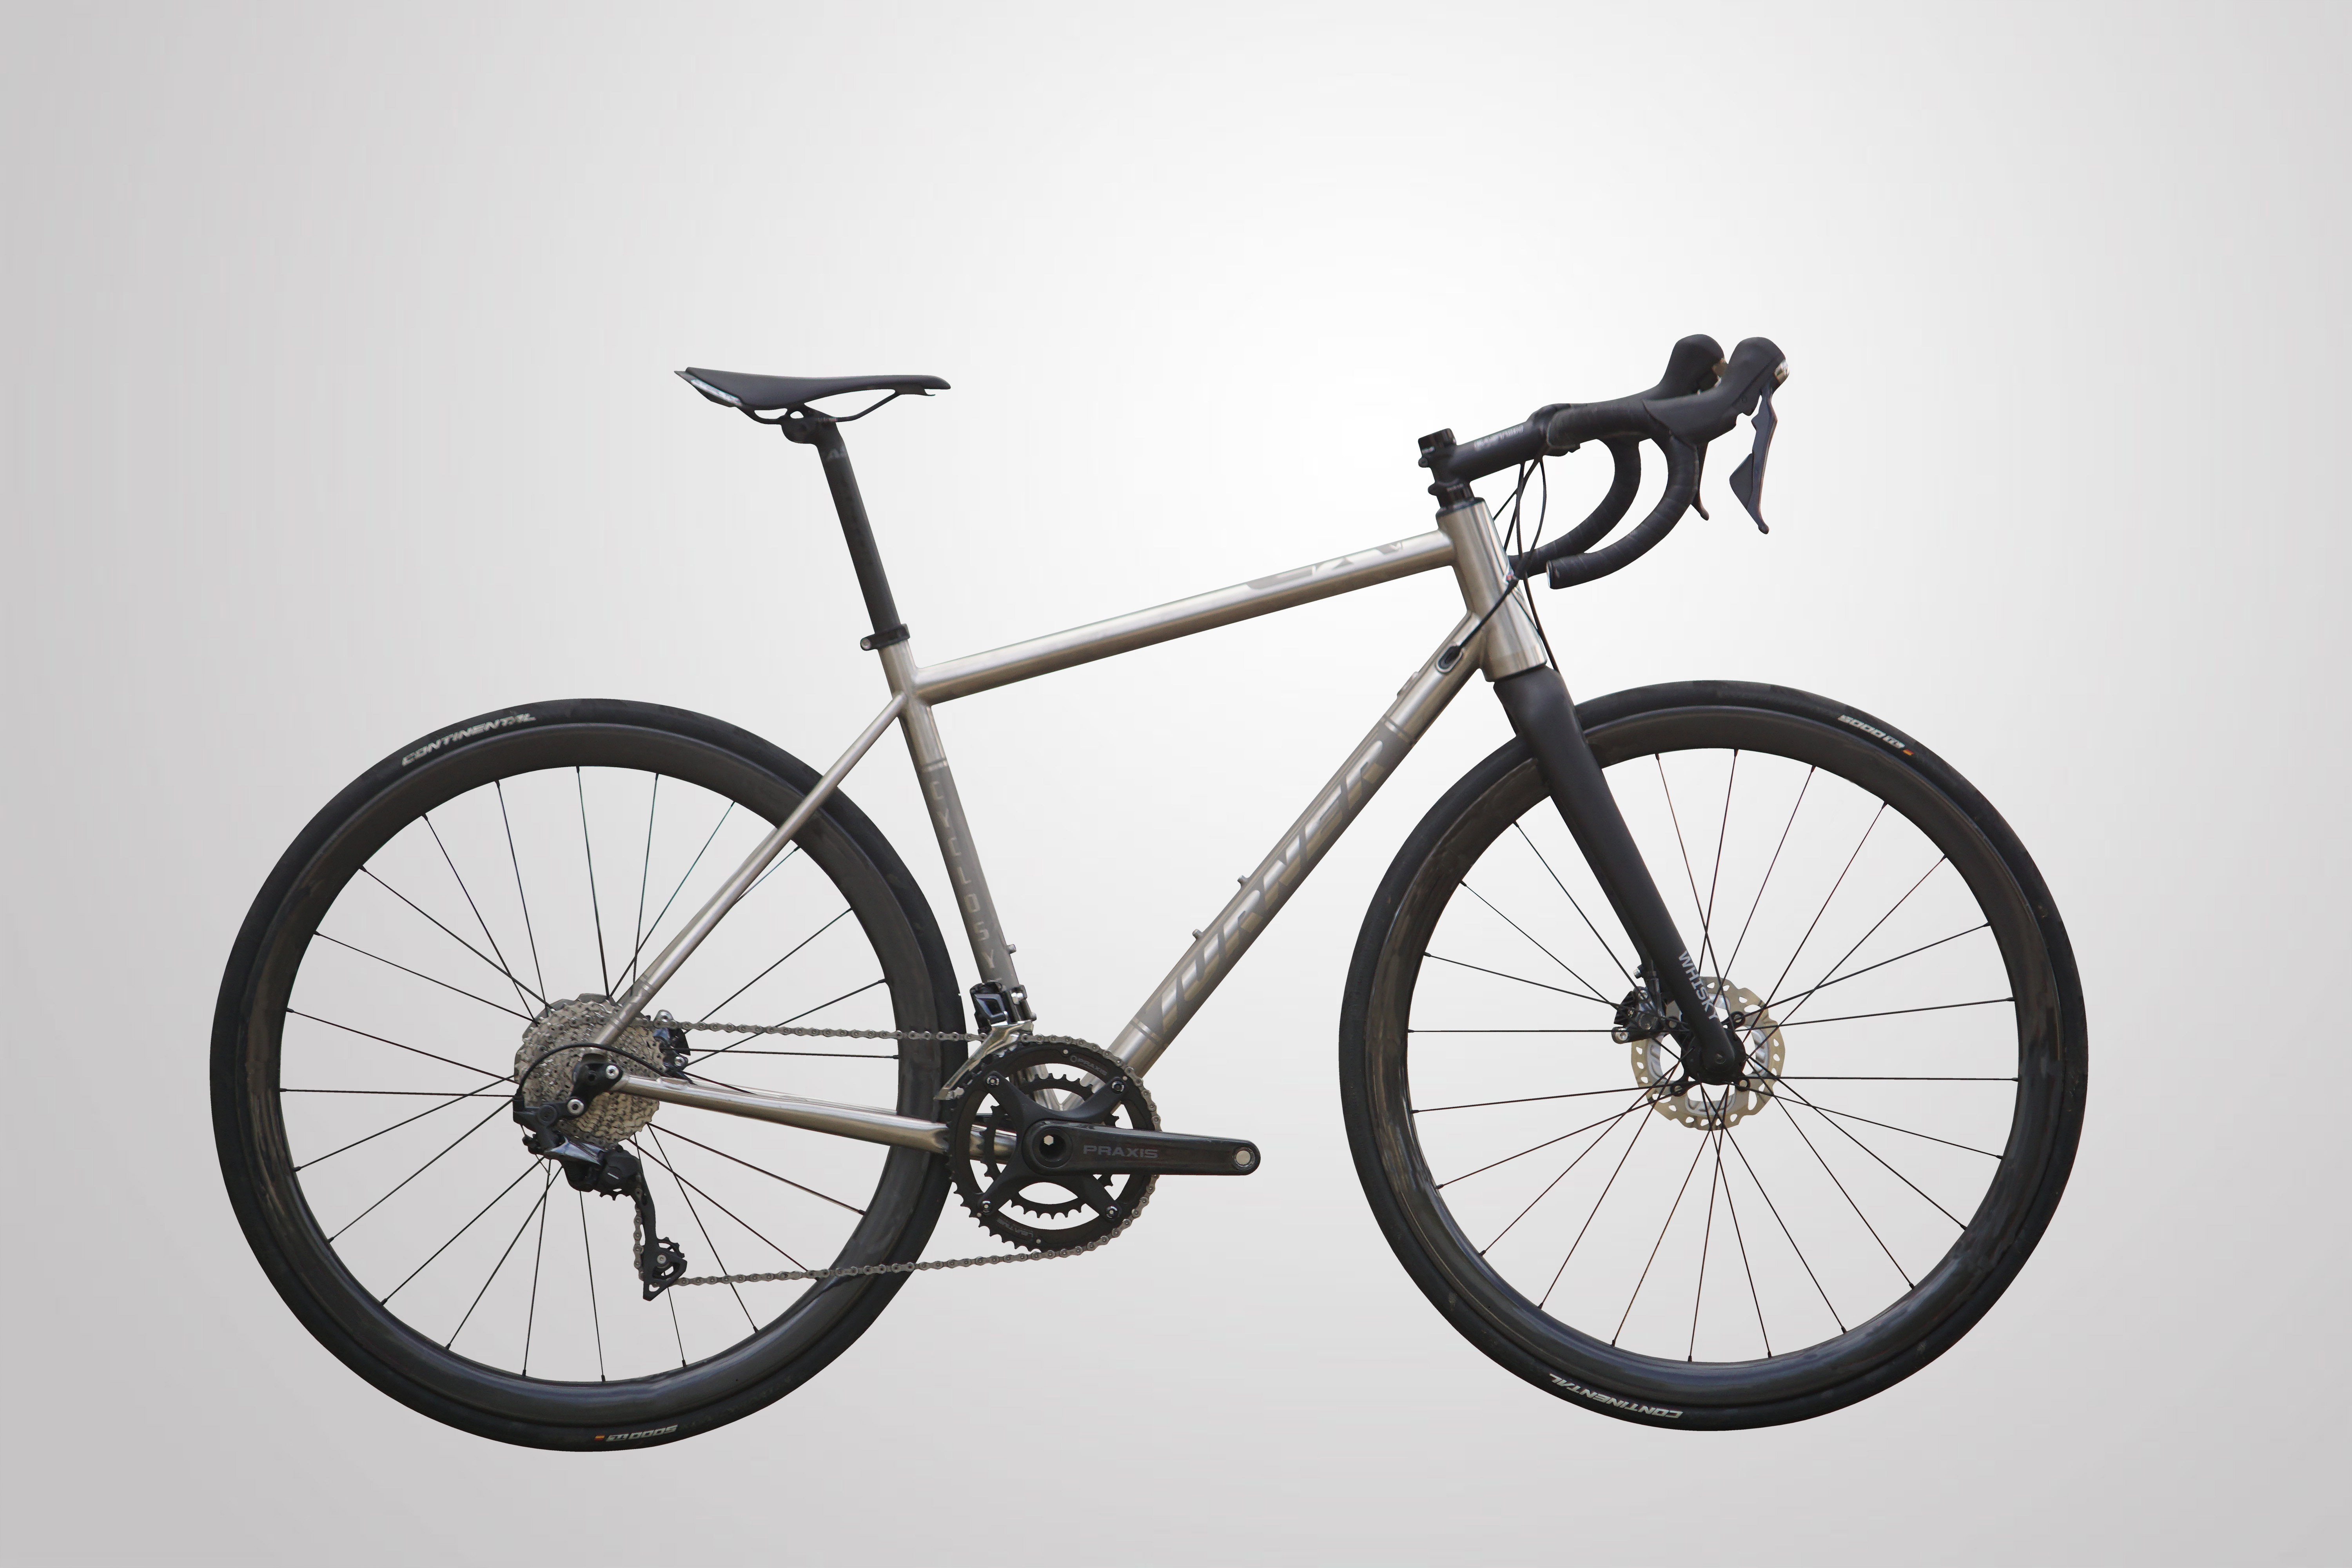 Turner Cyclosys goes titanium with All Road Ti Limited Edition frame